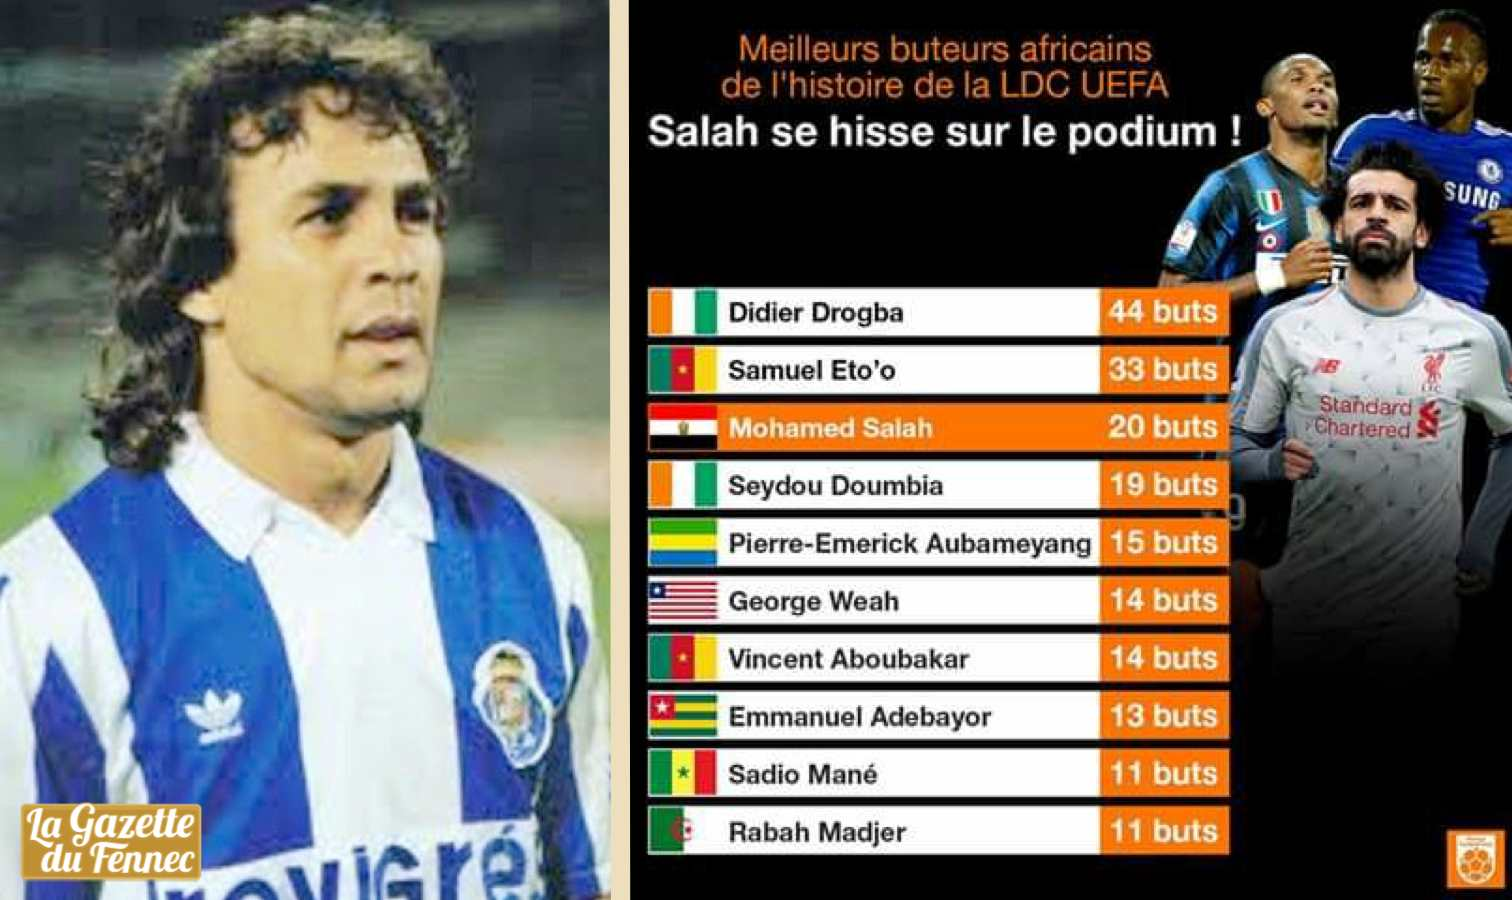 madjer top 10 africains